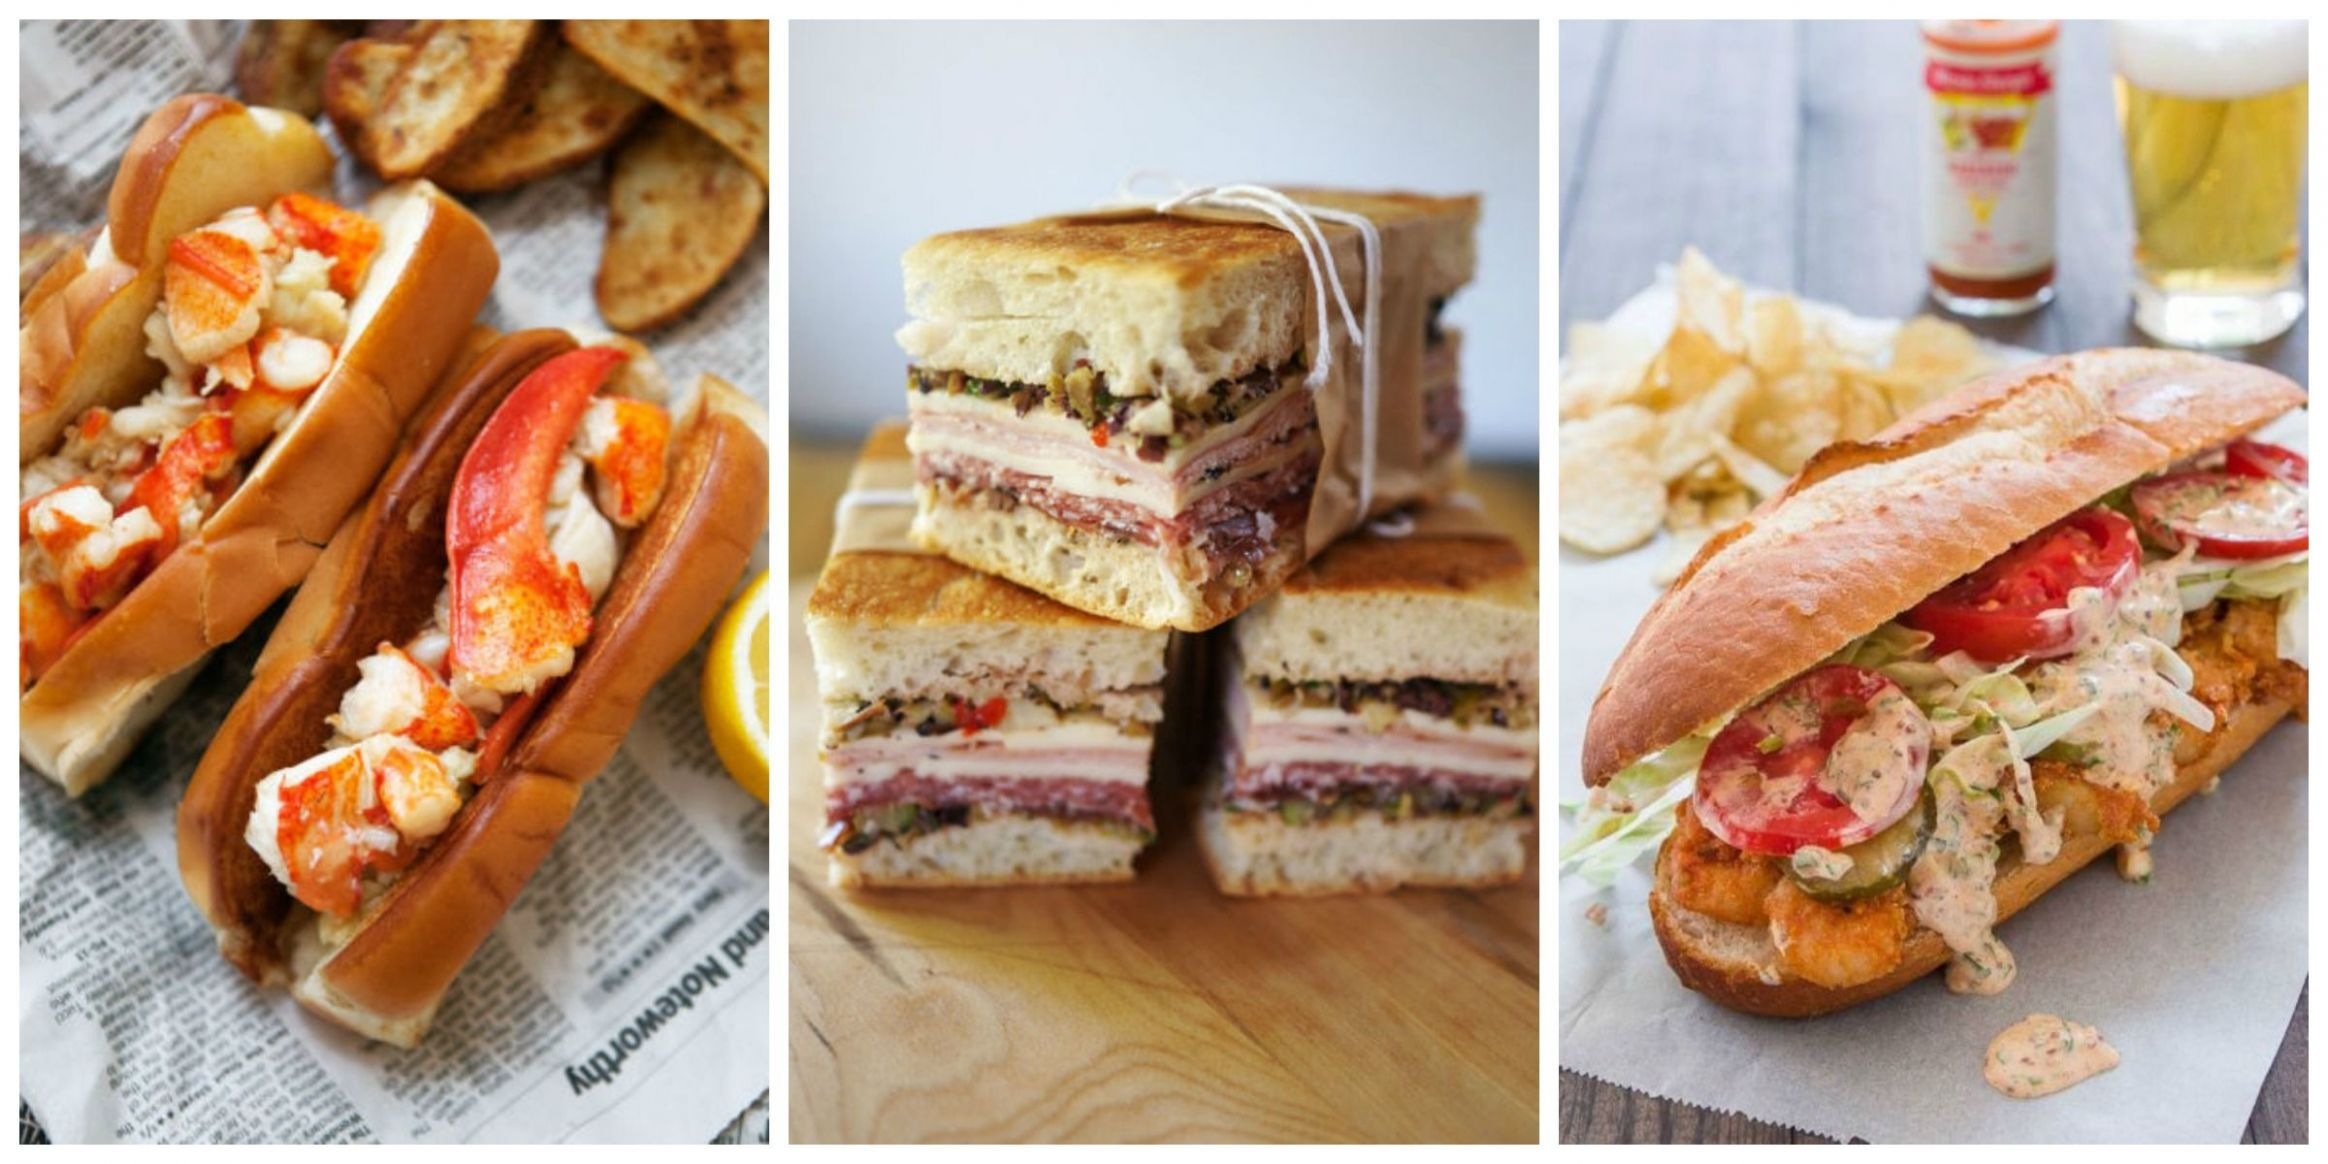 12 of America's Most Popular Sandwiches - American Sandwiches Recipes